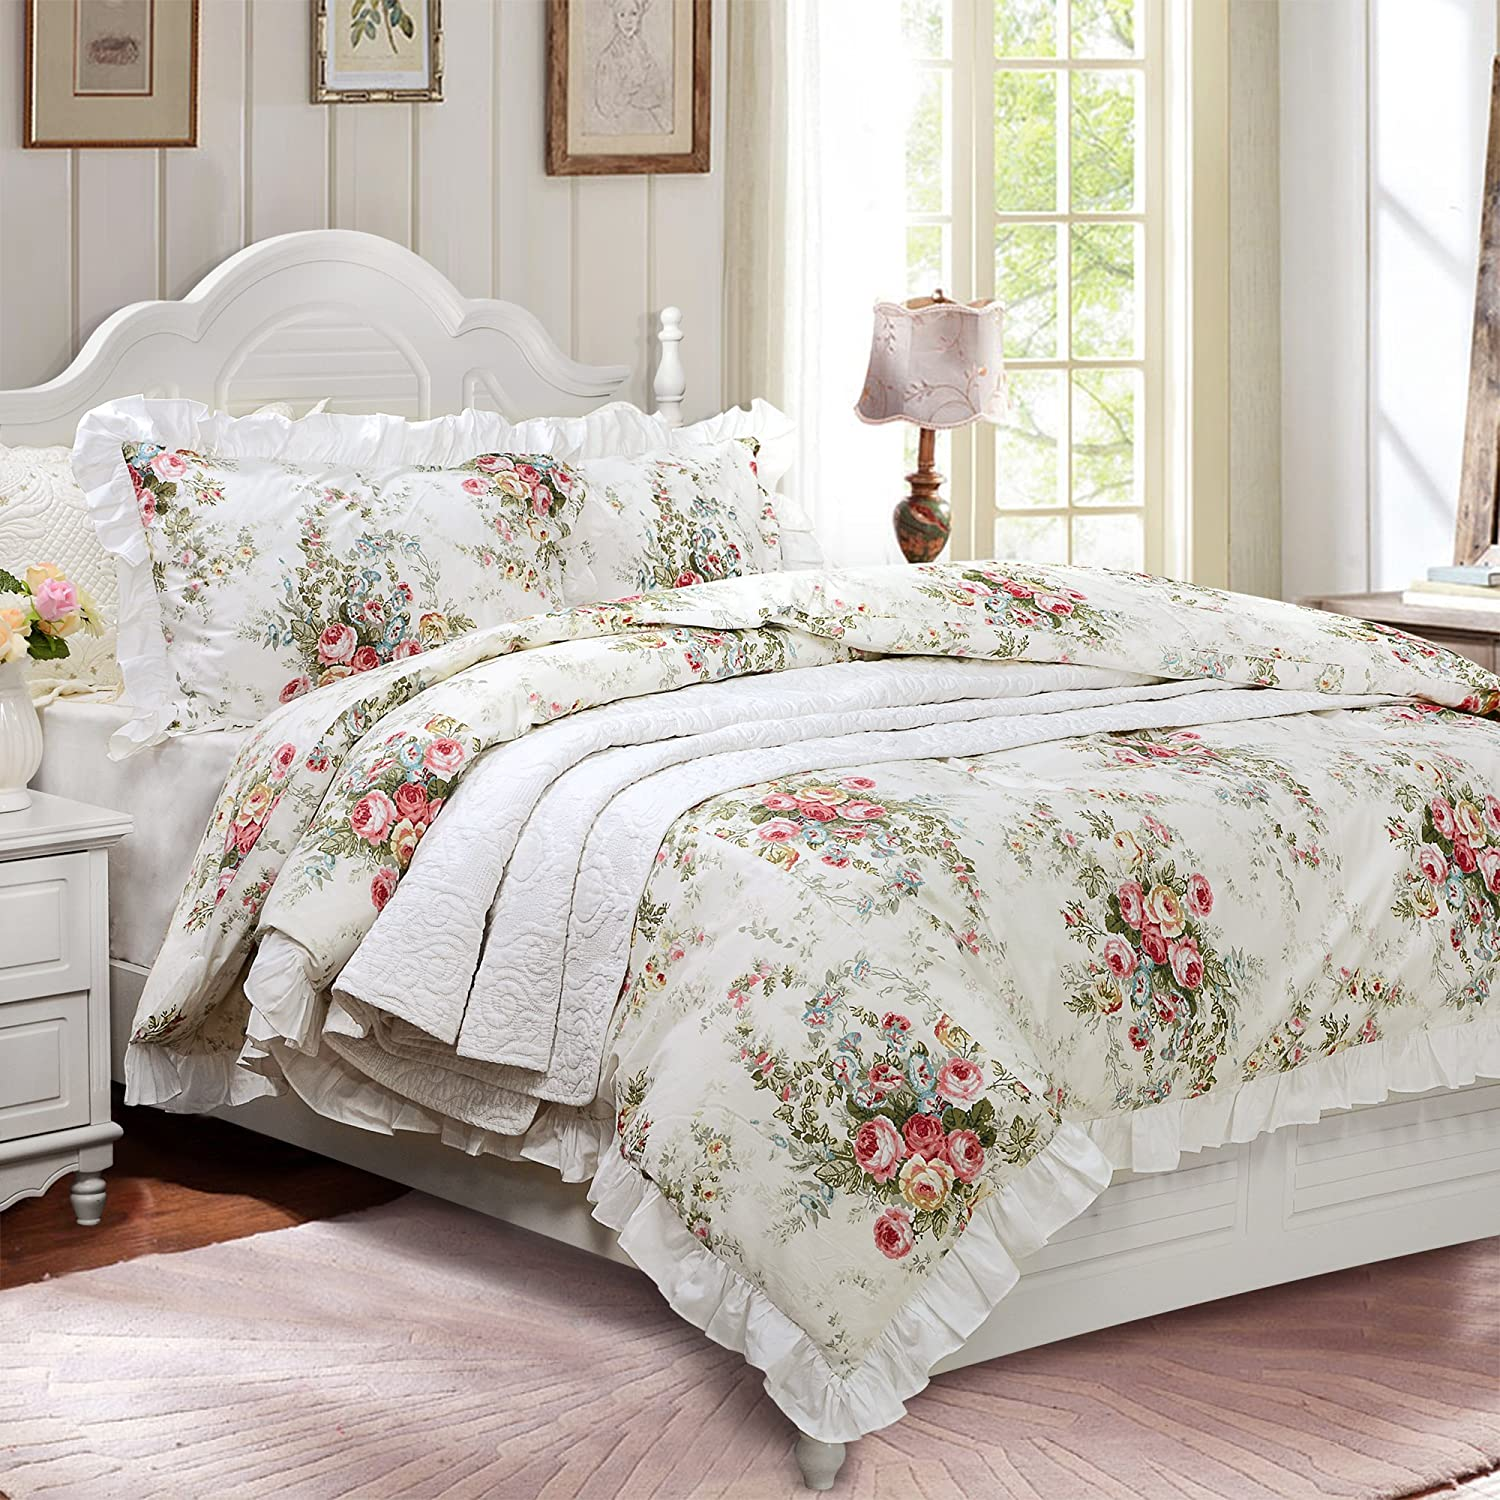 FADFAY Beautiful Duvet Cover Set 100% Cotton Vintage Rose Hypoallergenic,Queen Size 3-Piece